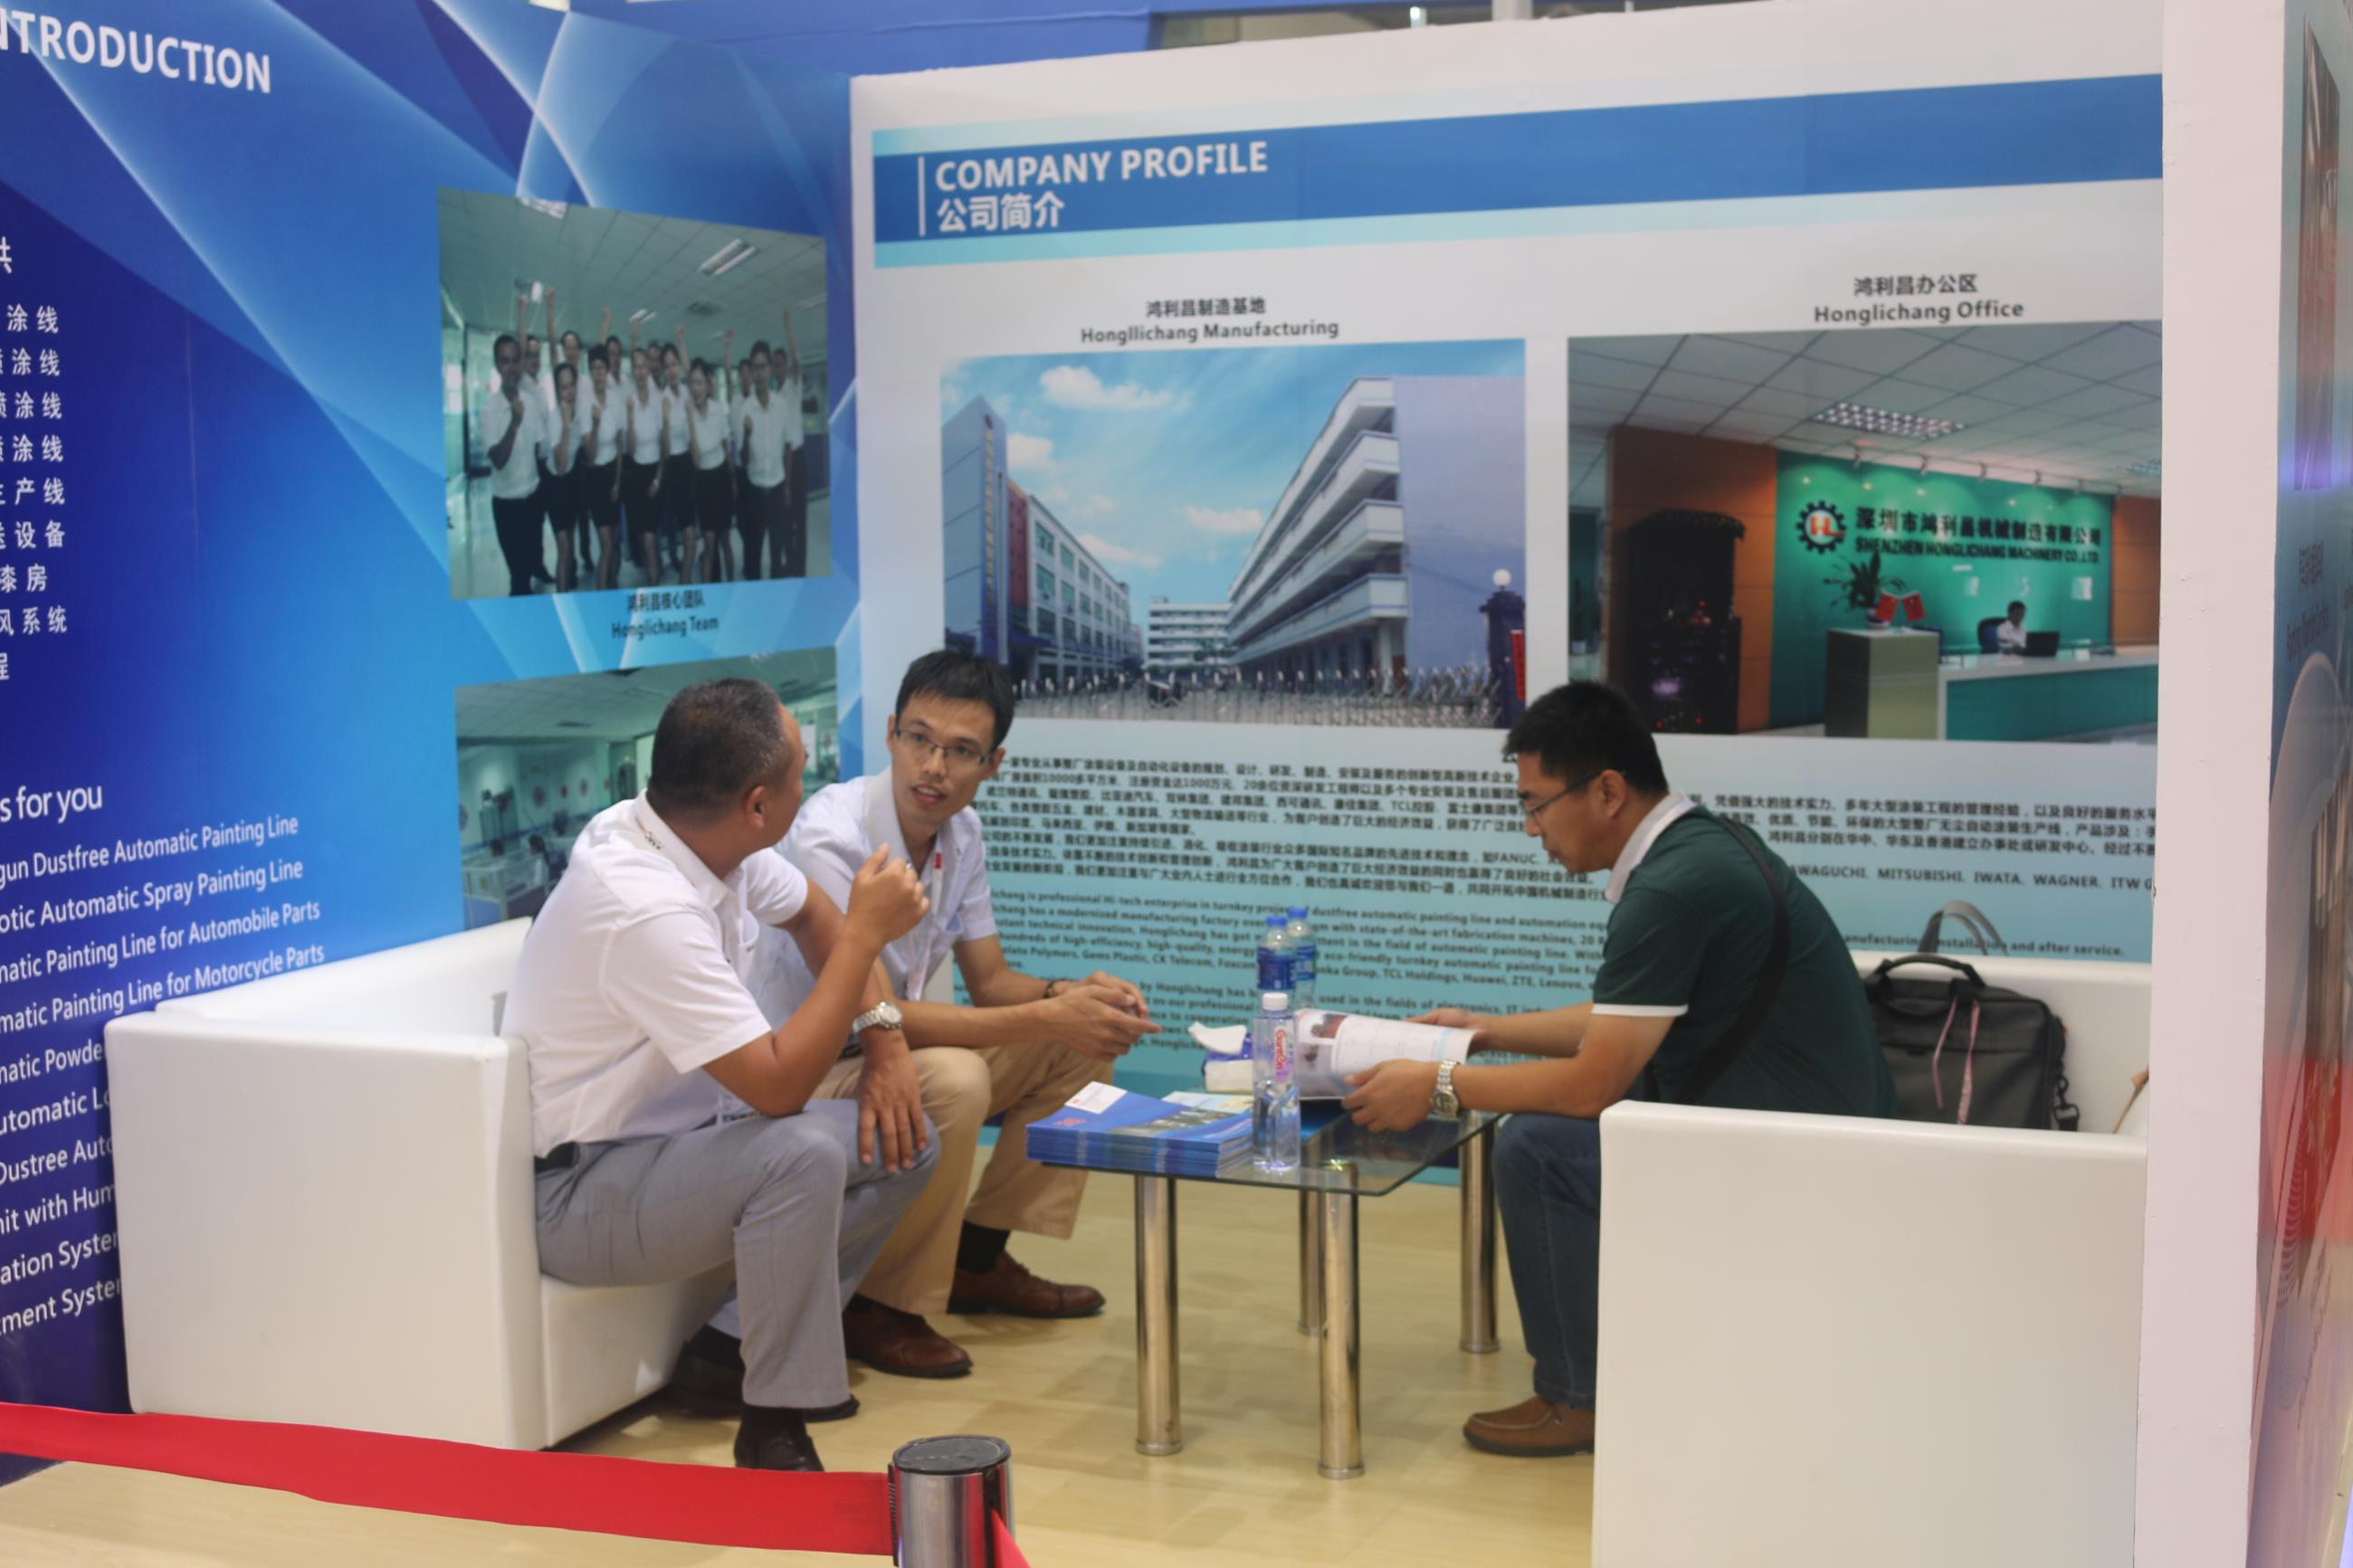 The Photo with Our Client in The Shanghai Exhibition